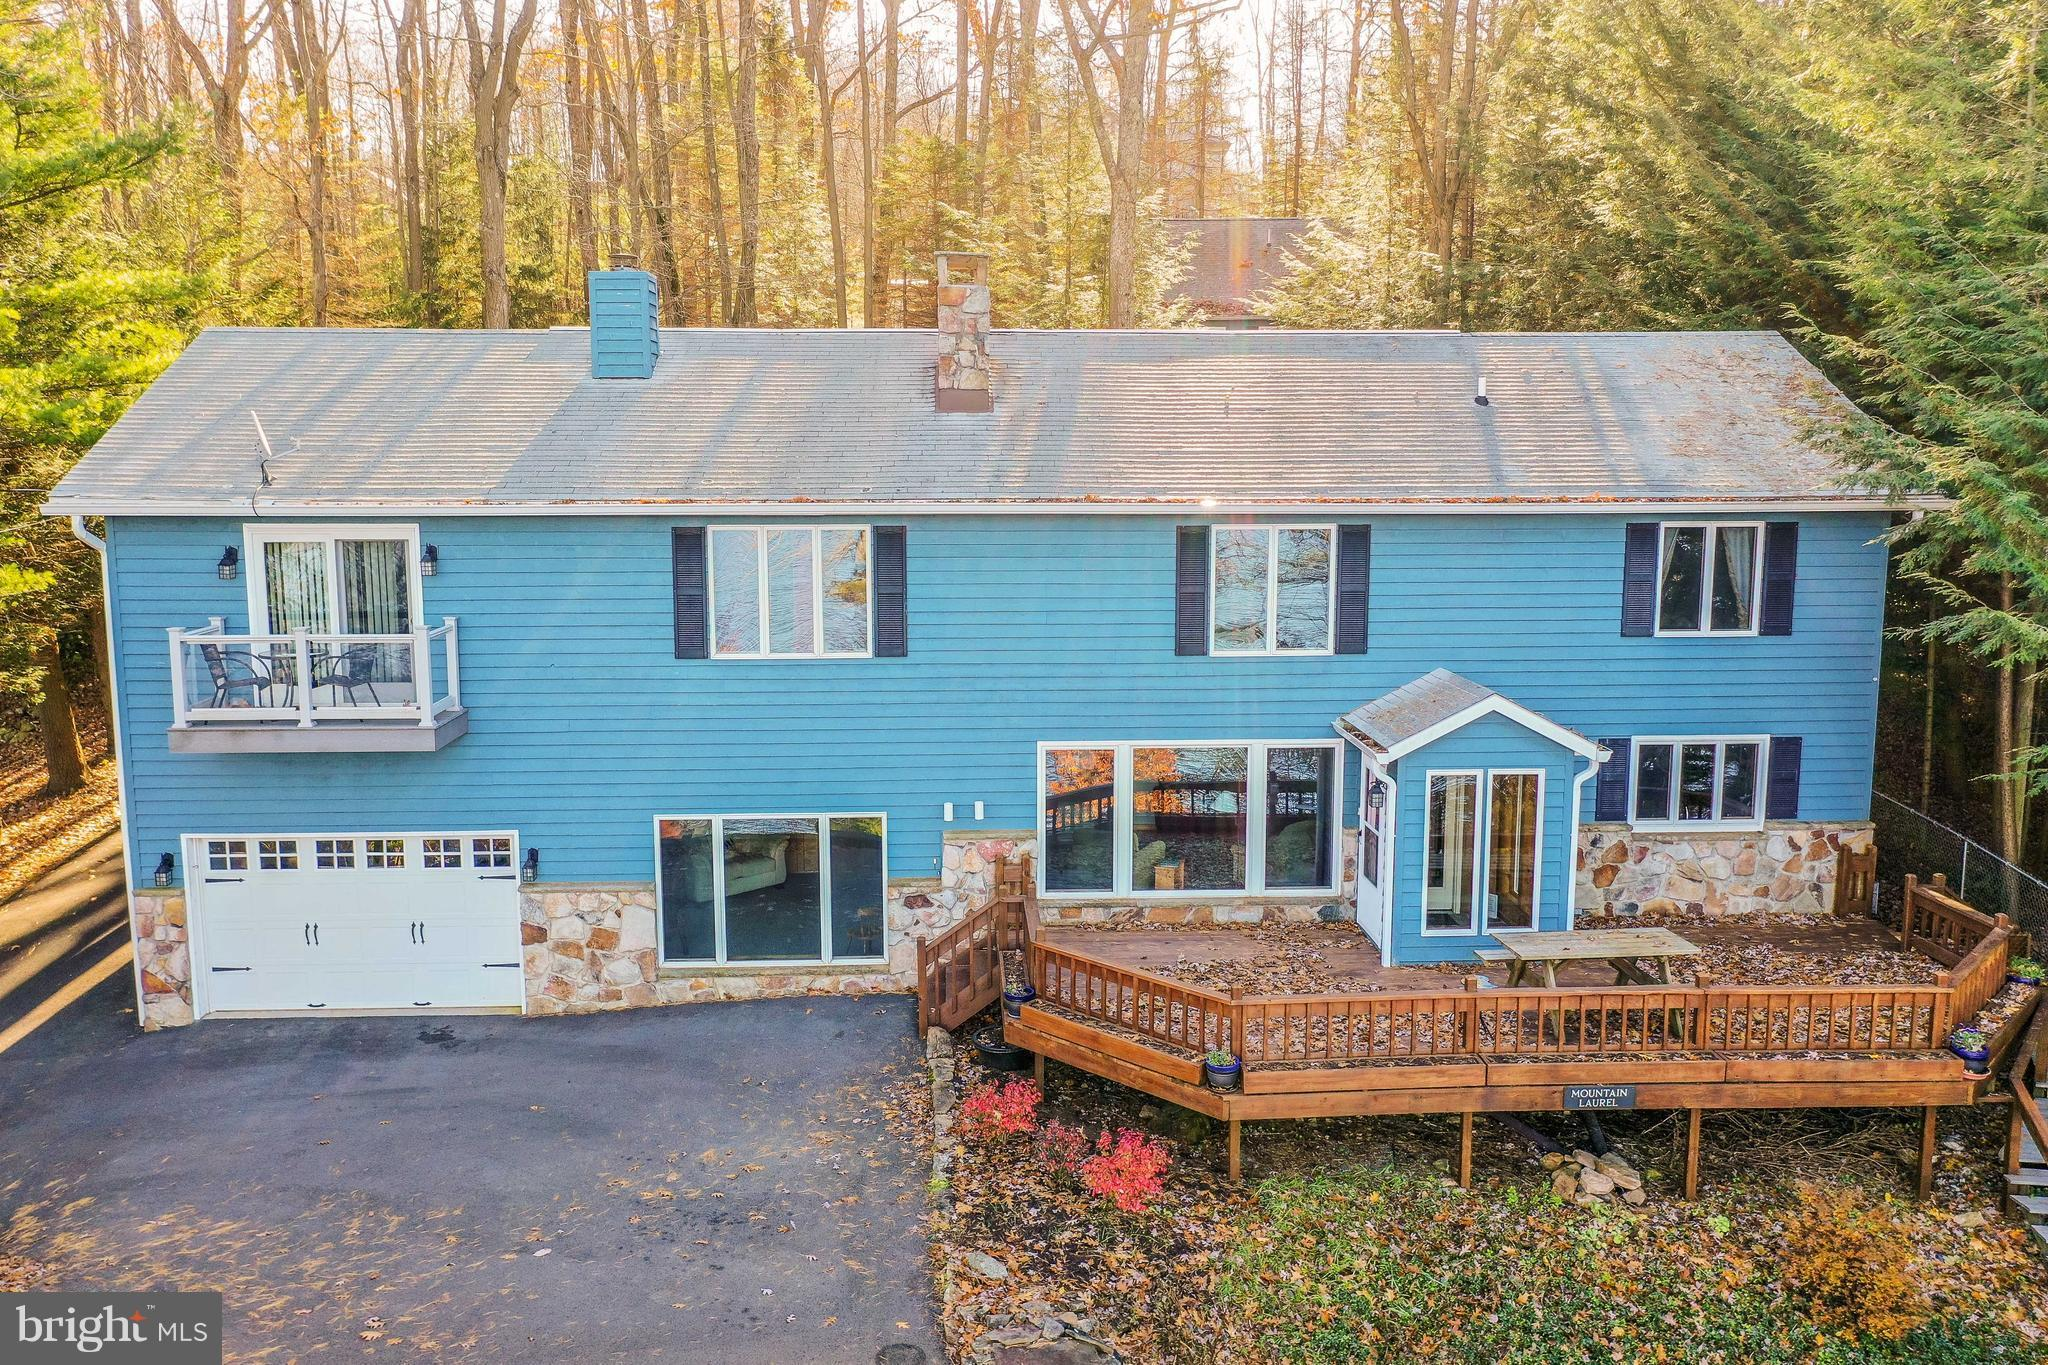 294 STATE PARK ROAD, SWANTON, MD 21561